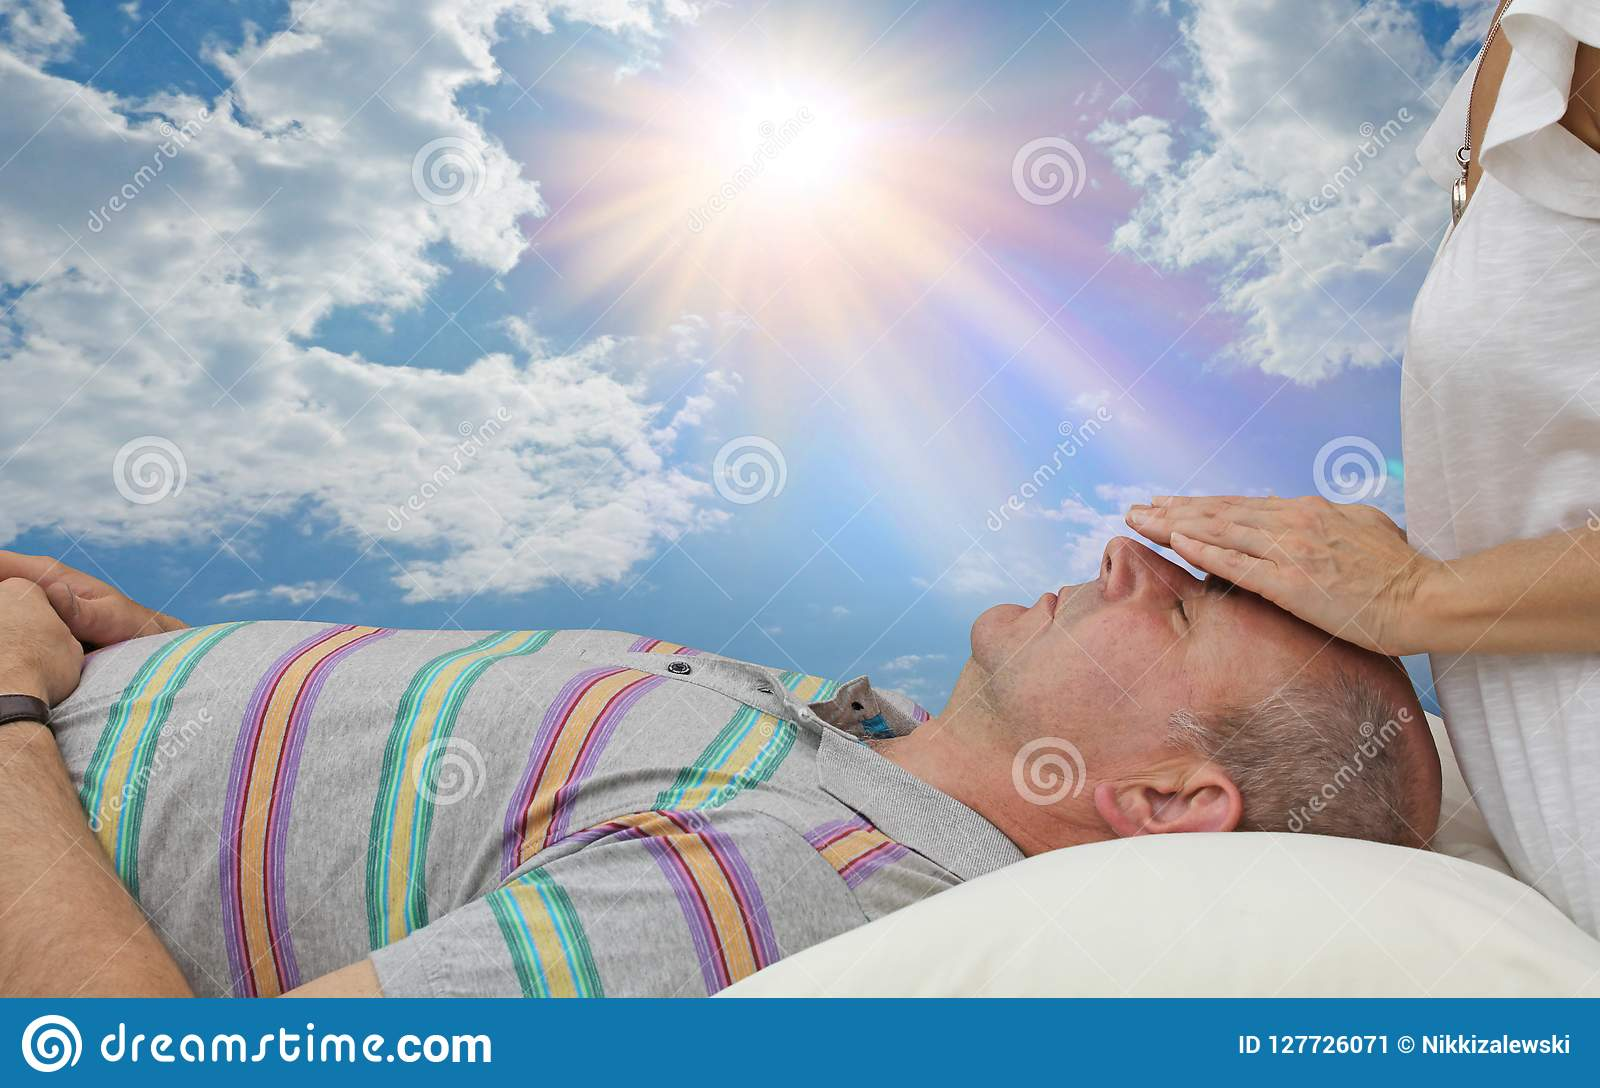 Healing Treatment Giving An Energy Healing Treatment Out Doors Stock Image Image